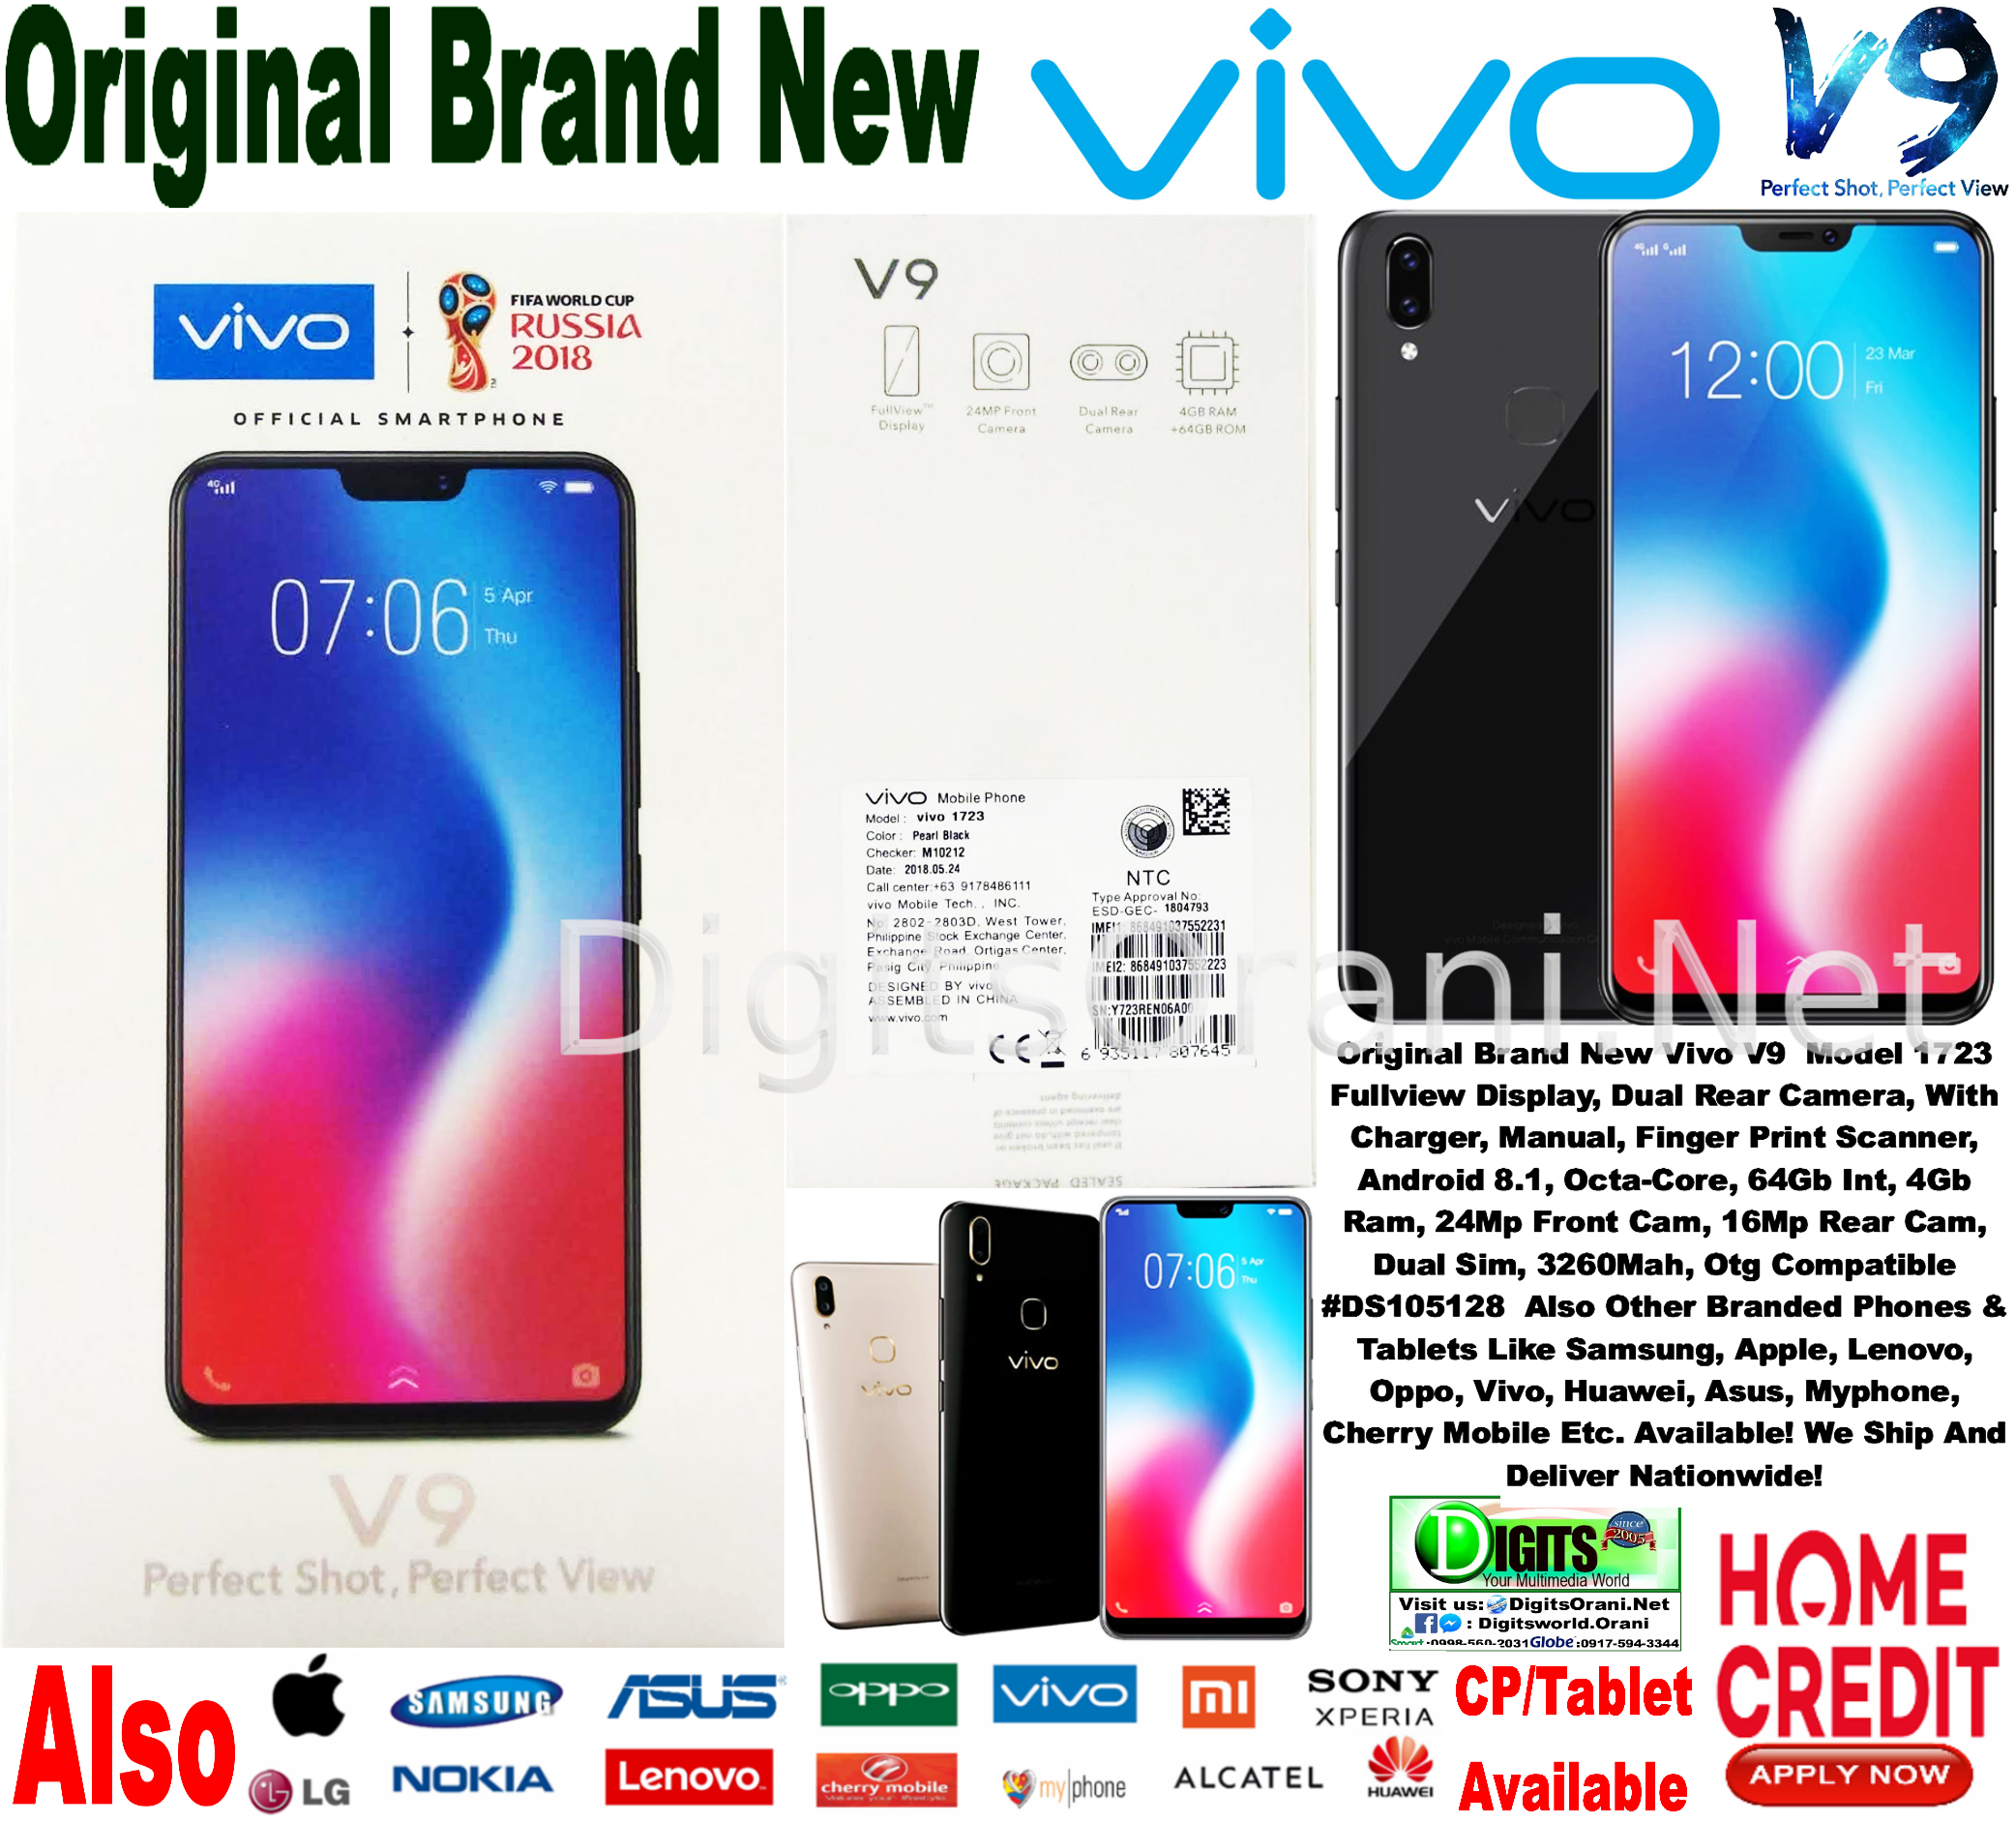 Original Android Cellphone 64Gb Int , 4Gb Ram, 6 3 Inch, Vivo V9 Model 1723  Fullview Display, Dual Rear Camera, With Charger, Manual, Finger Print